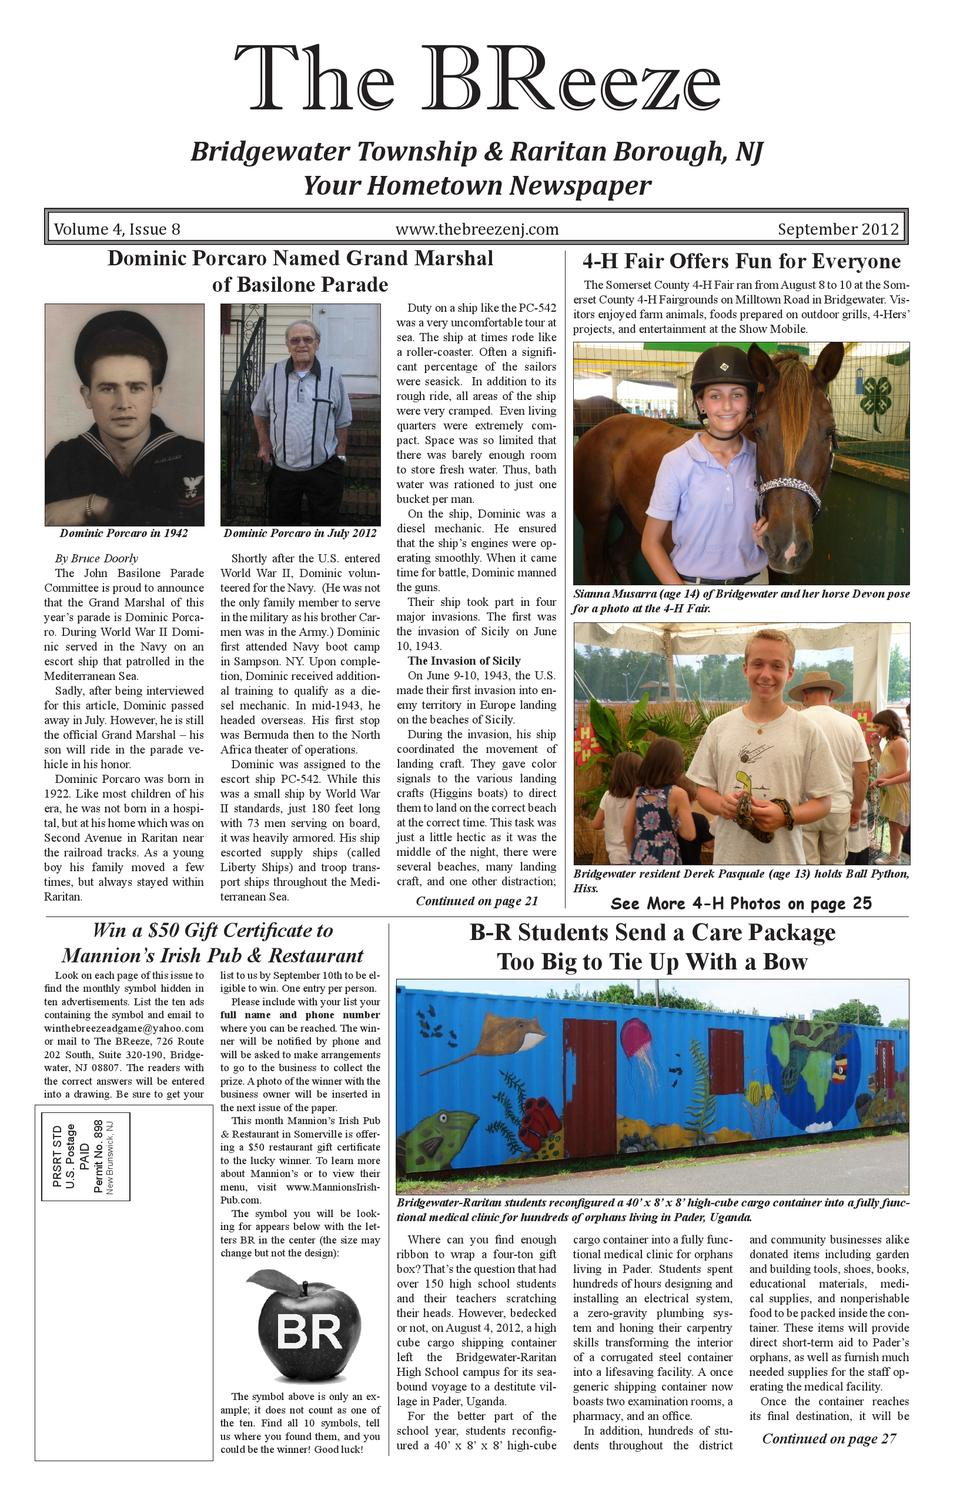 The BReeze - September 2012 by Wendy Doheny - issuu